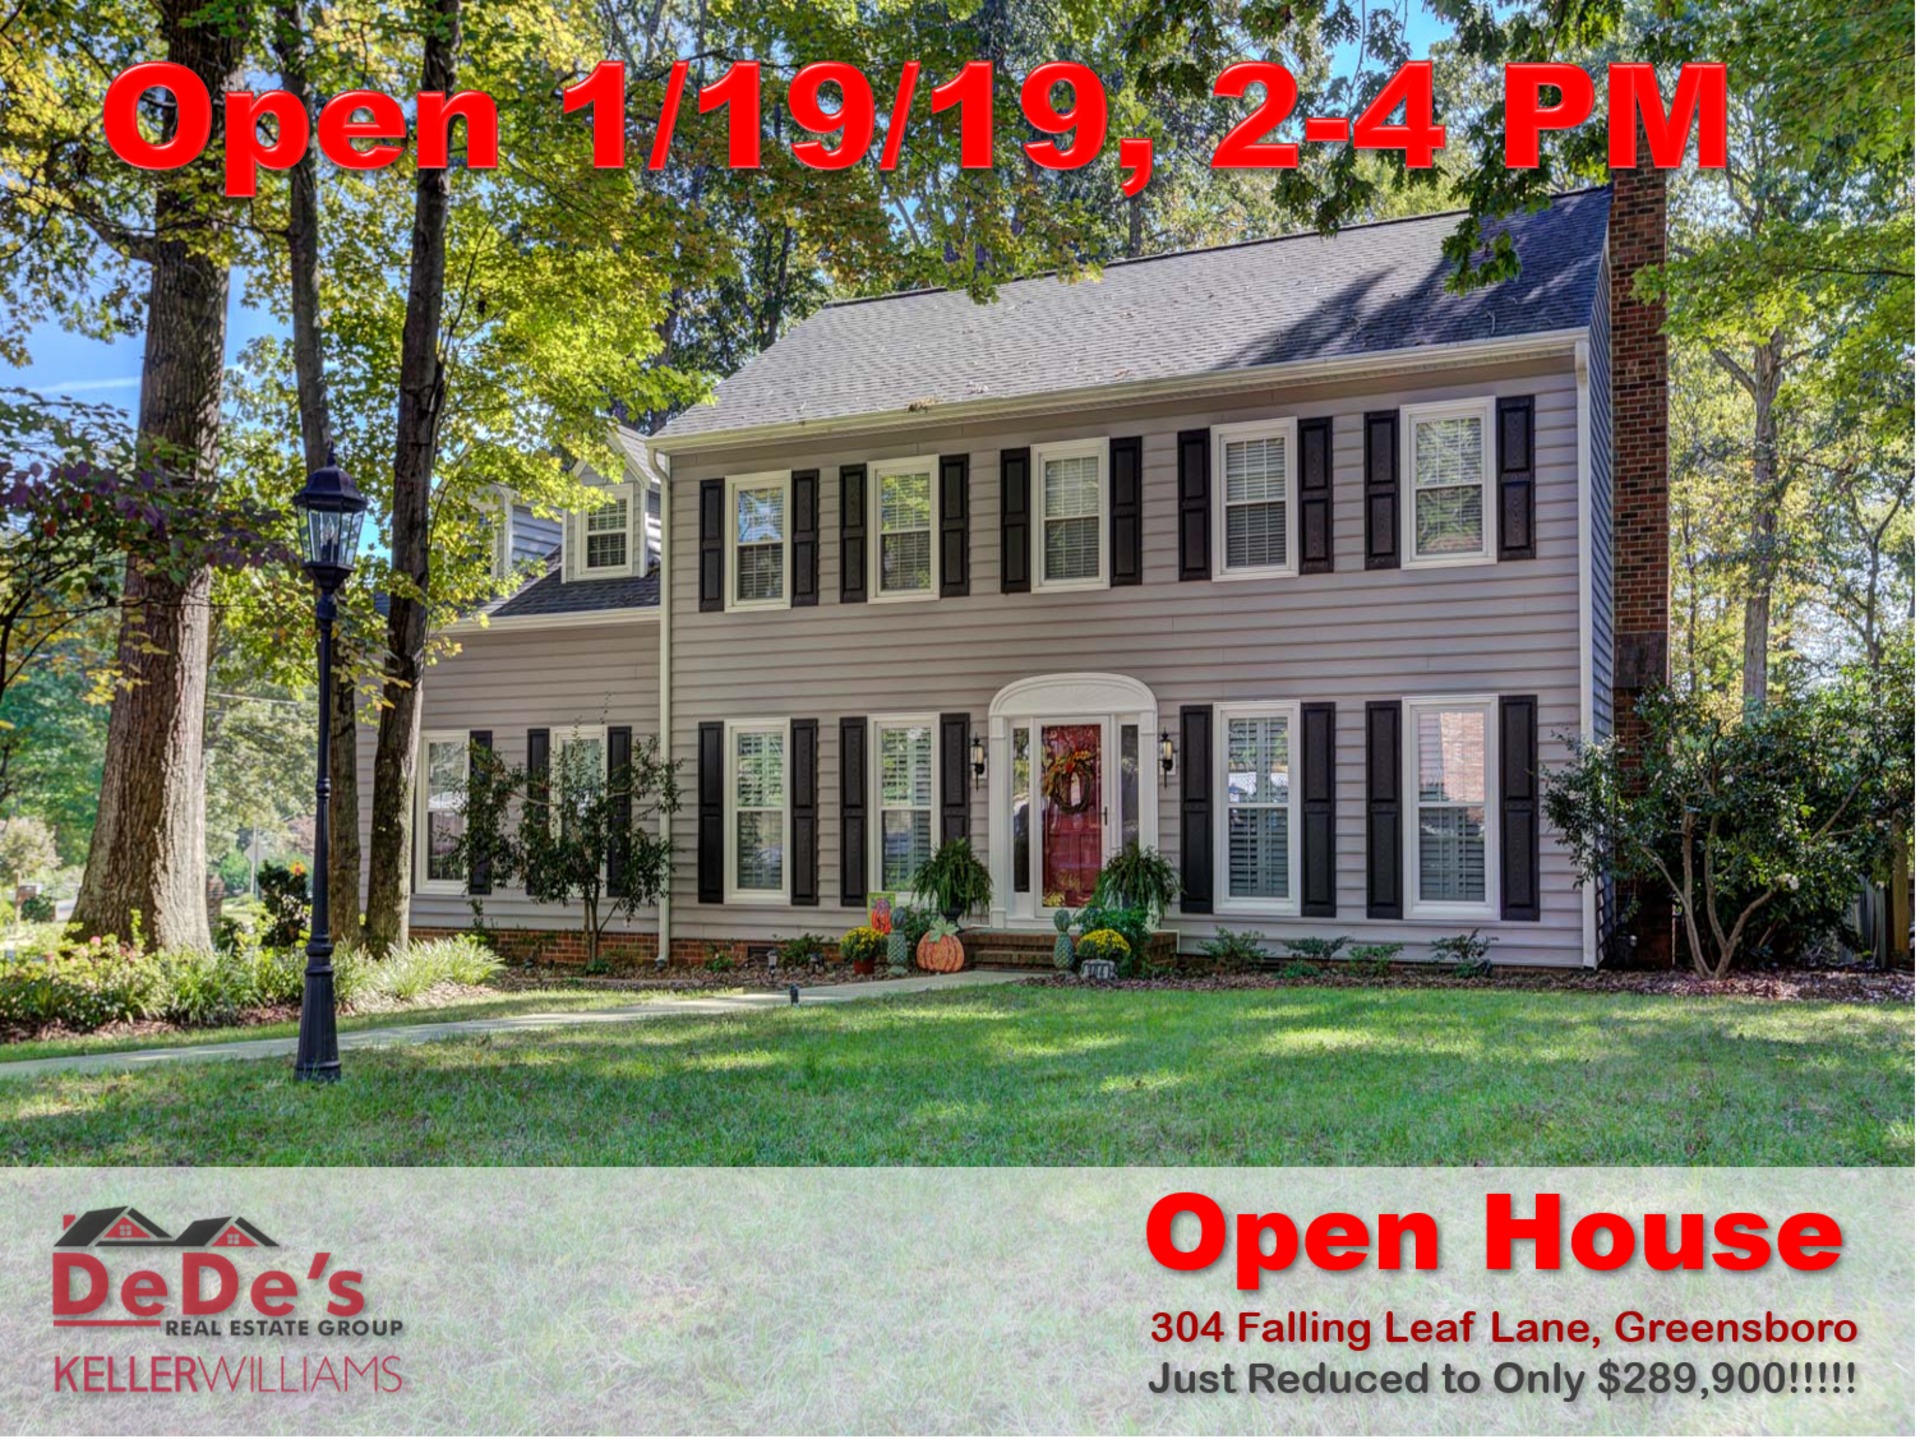 Open House Saturday 1/19/19 at 304 Falling Leaf Lane, Greensboro